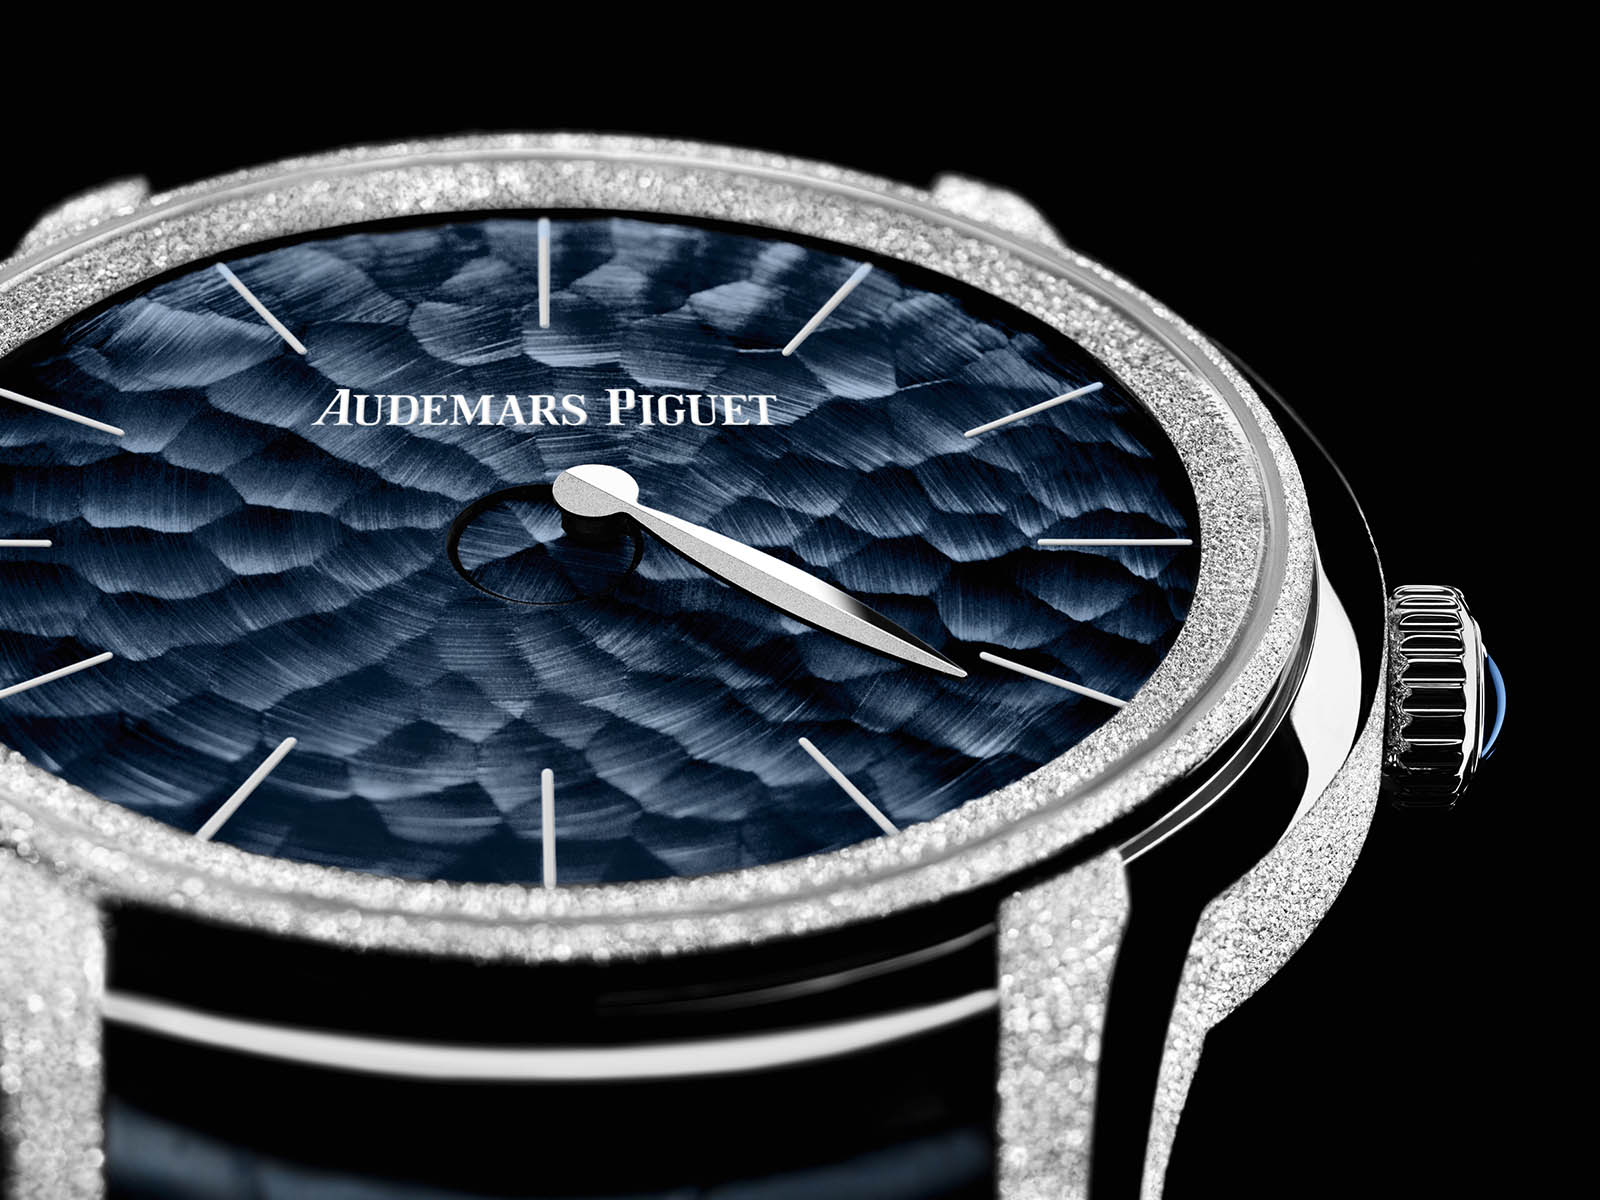 77266bc-gg-a326cr-01-audemars-piguet-millenary-frosted-gold-philosophique-1.jpg